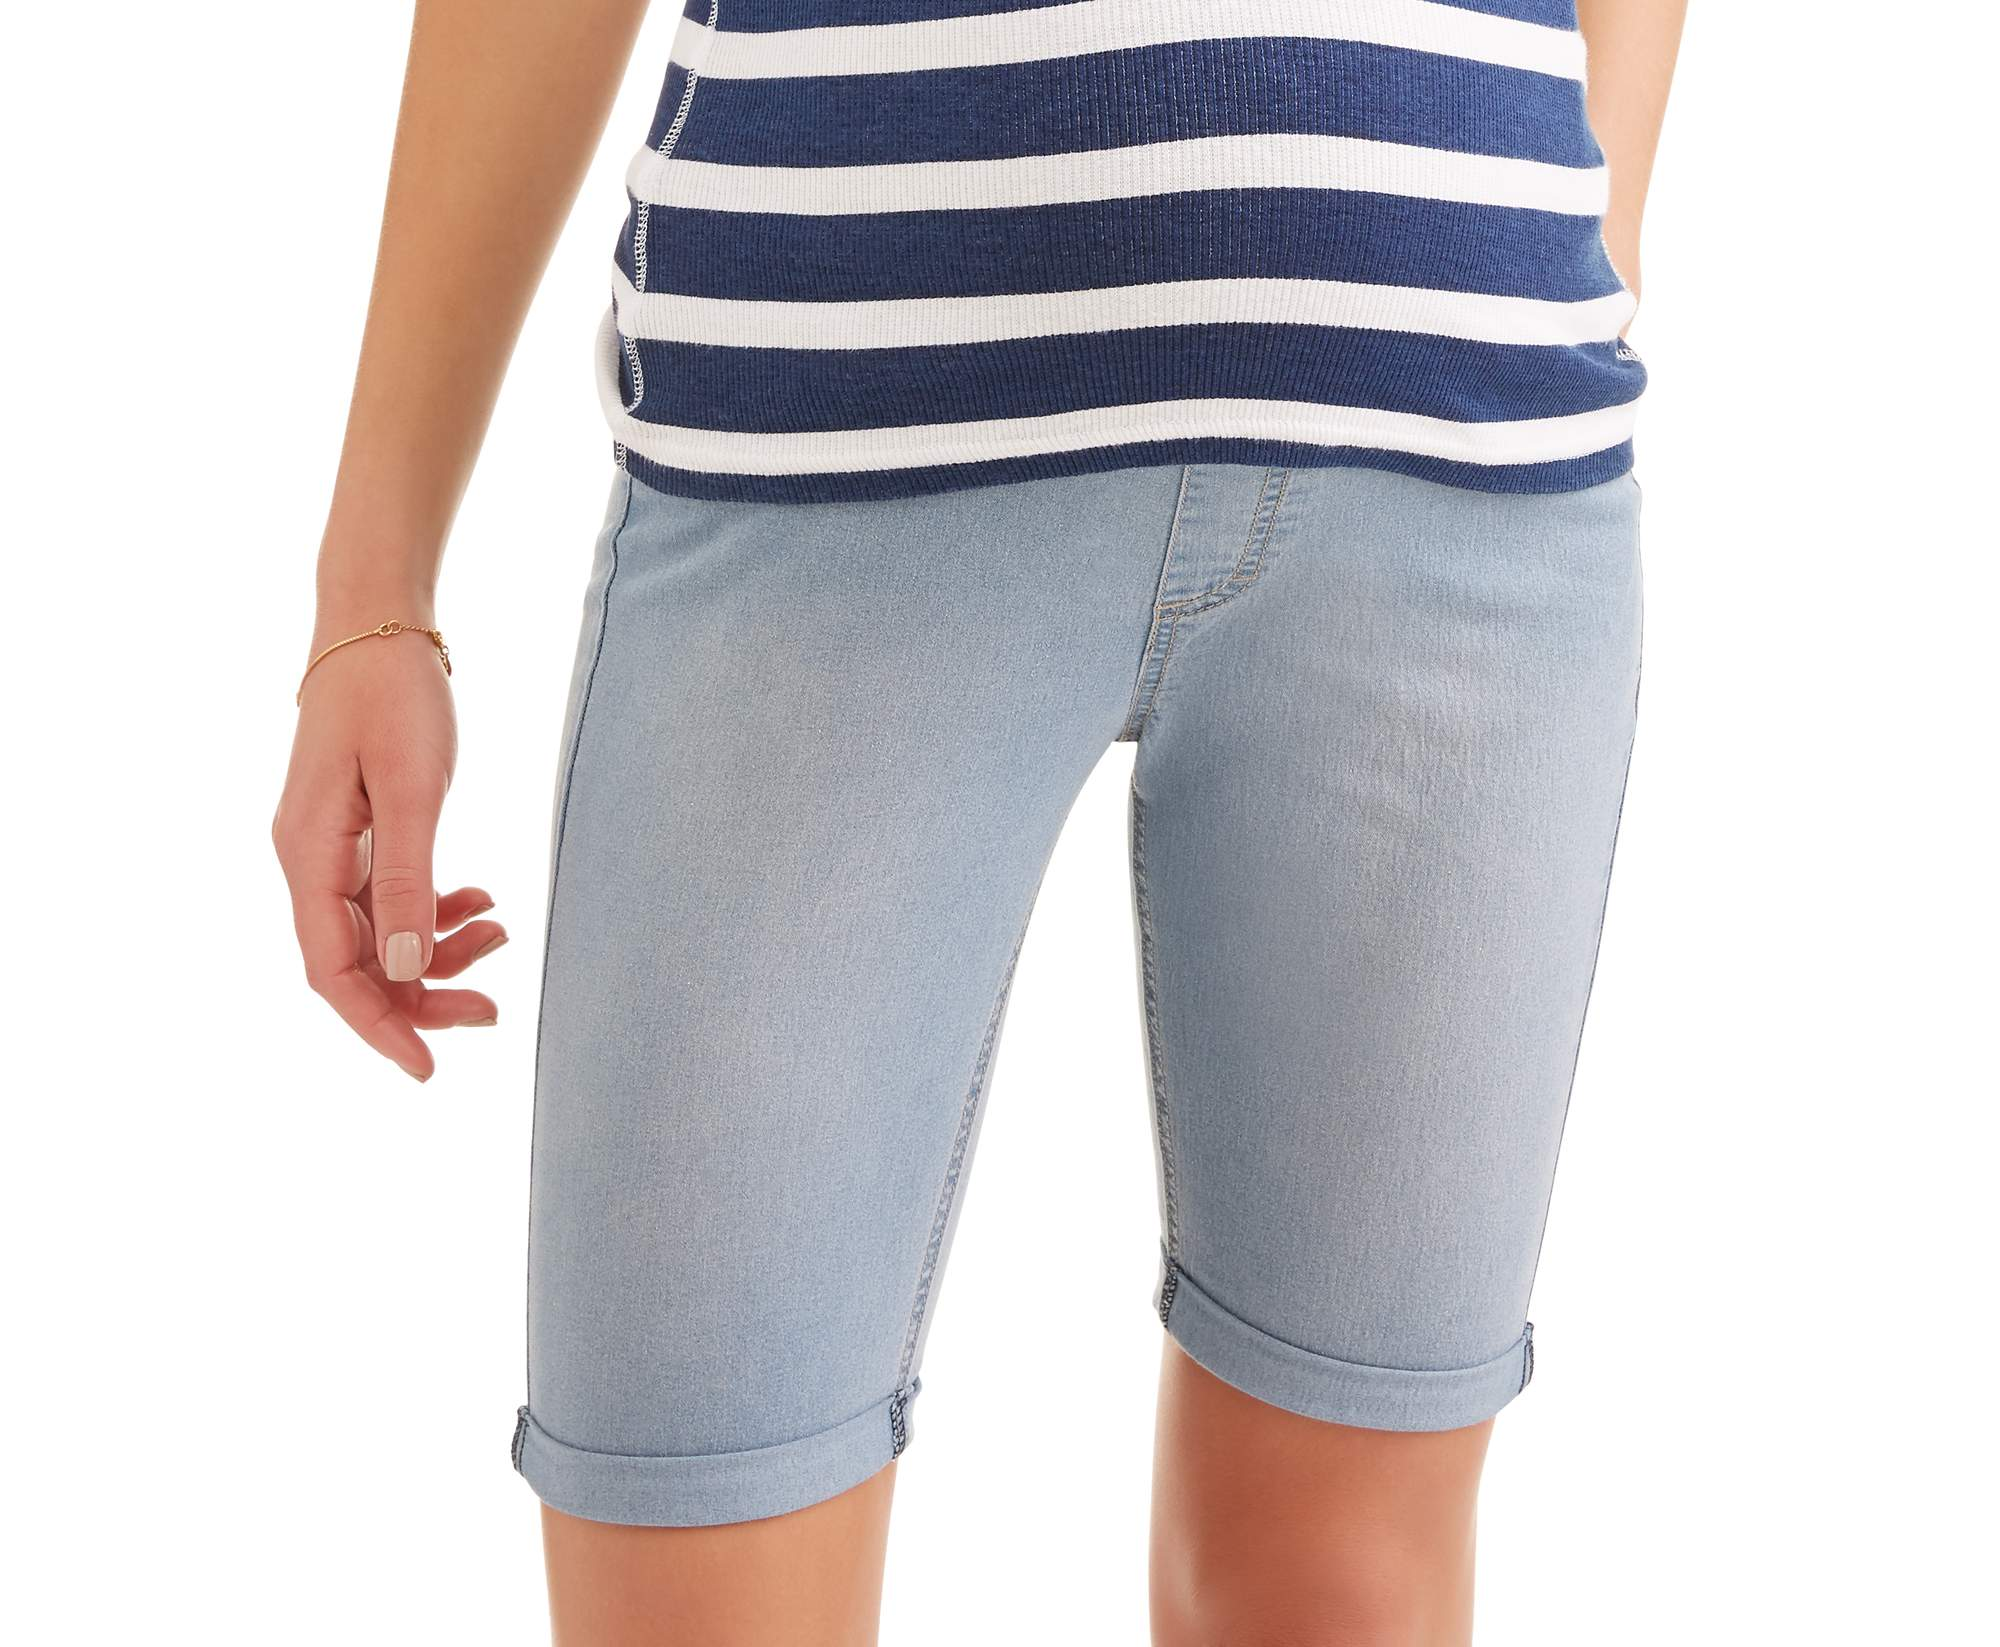 Maternity Full Panel Super Soft 5 Pocket Bermuda Shorts, Available in Plus Sizes by